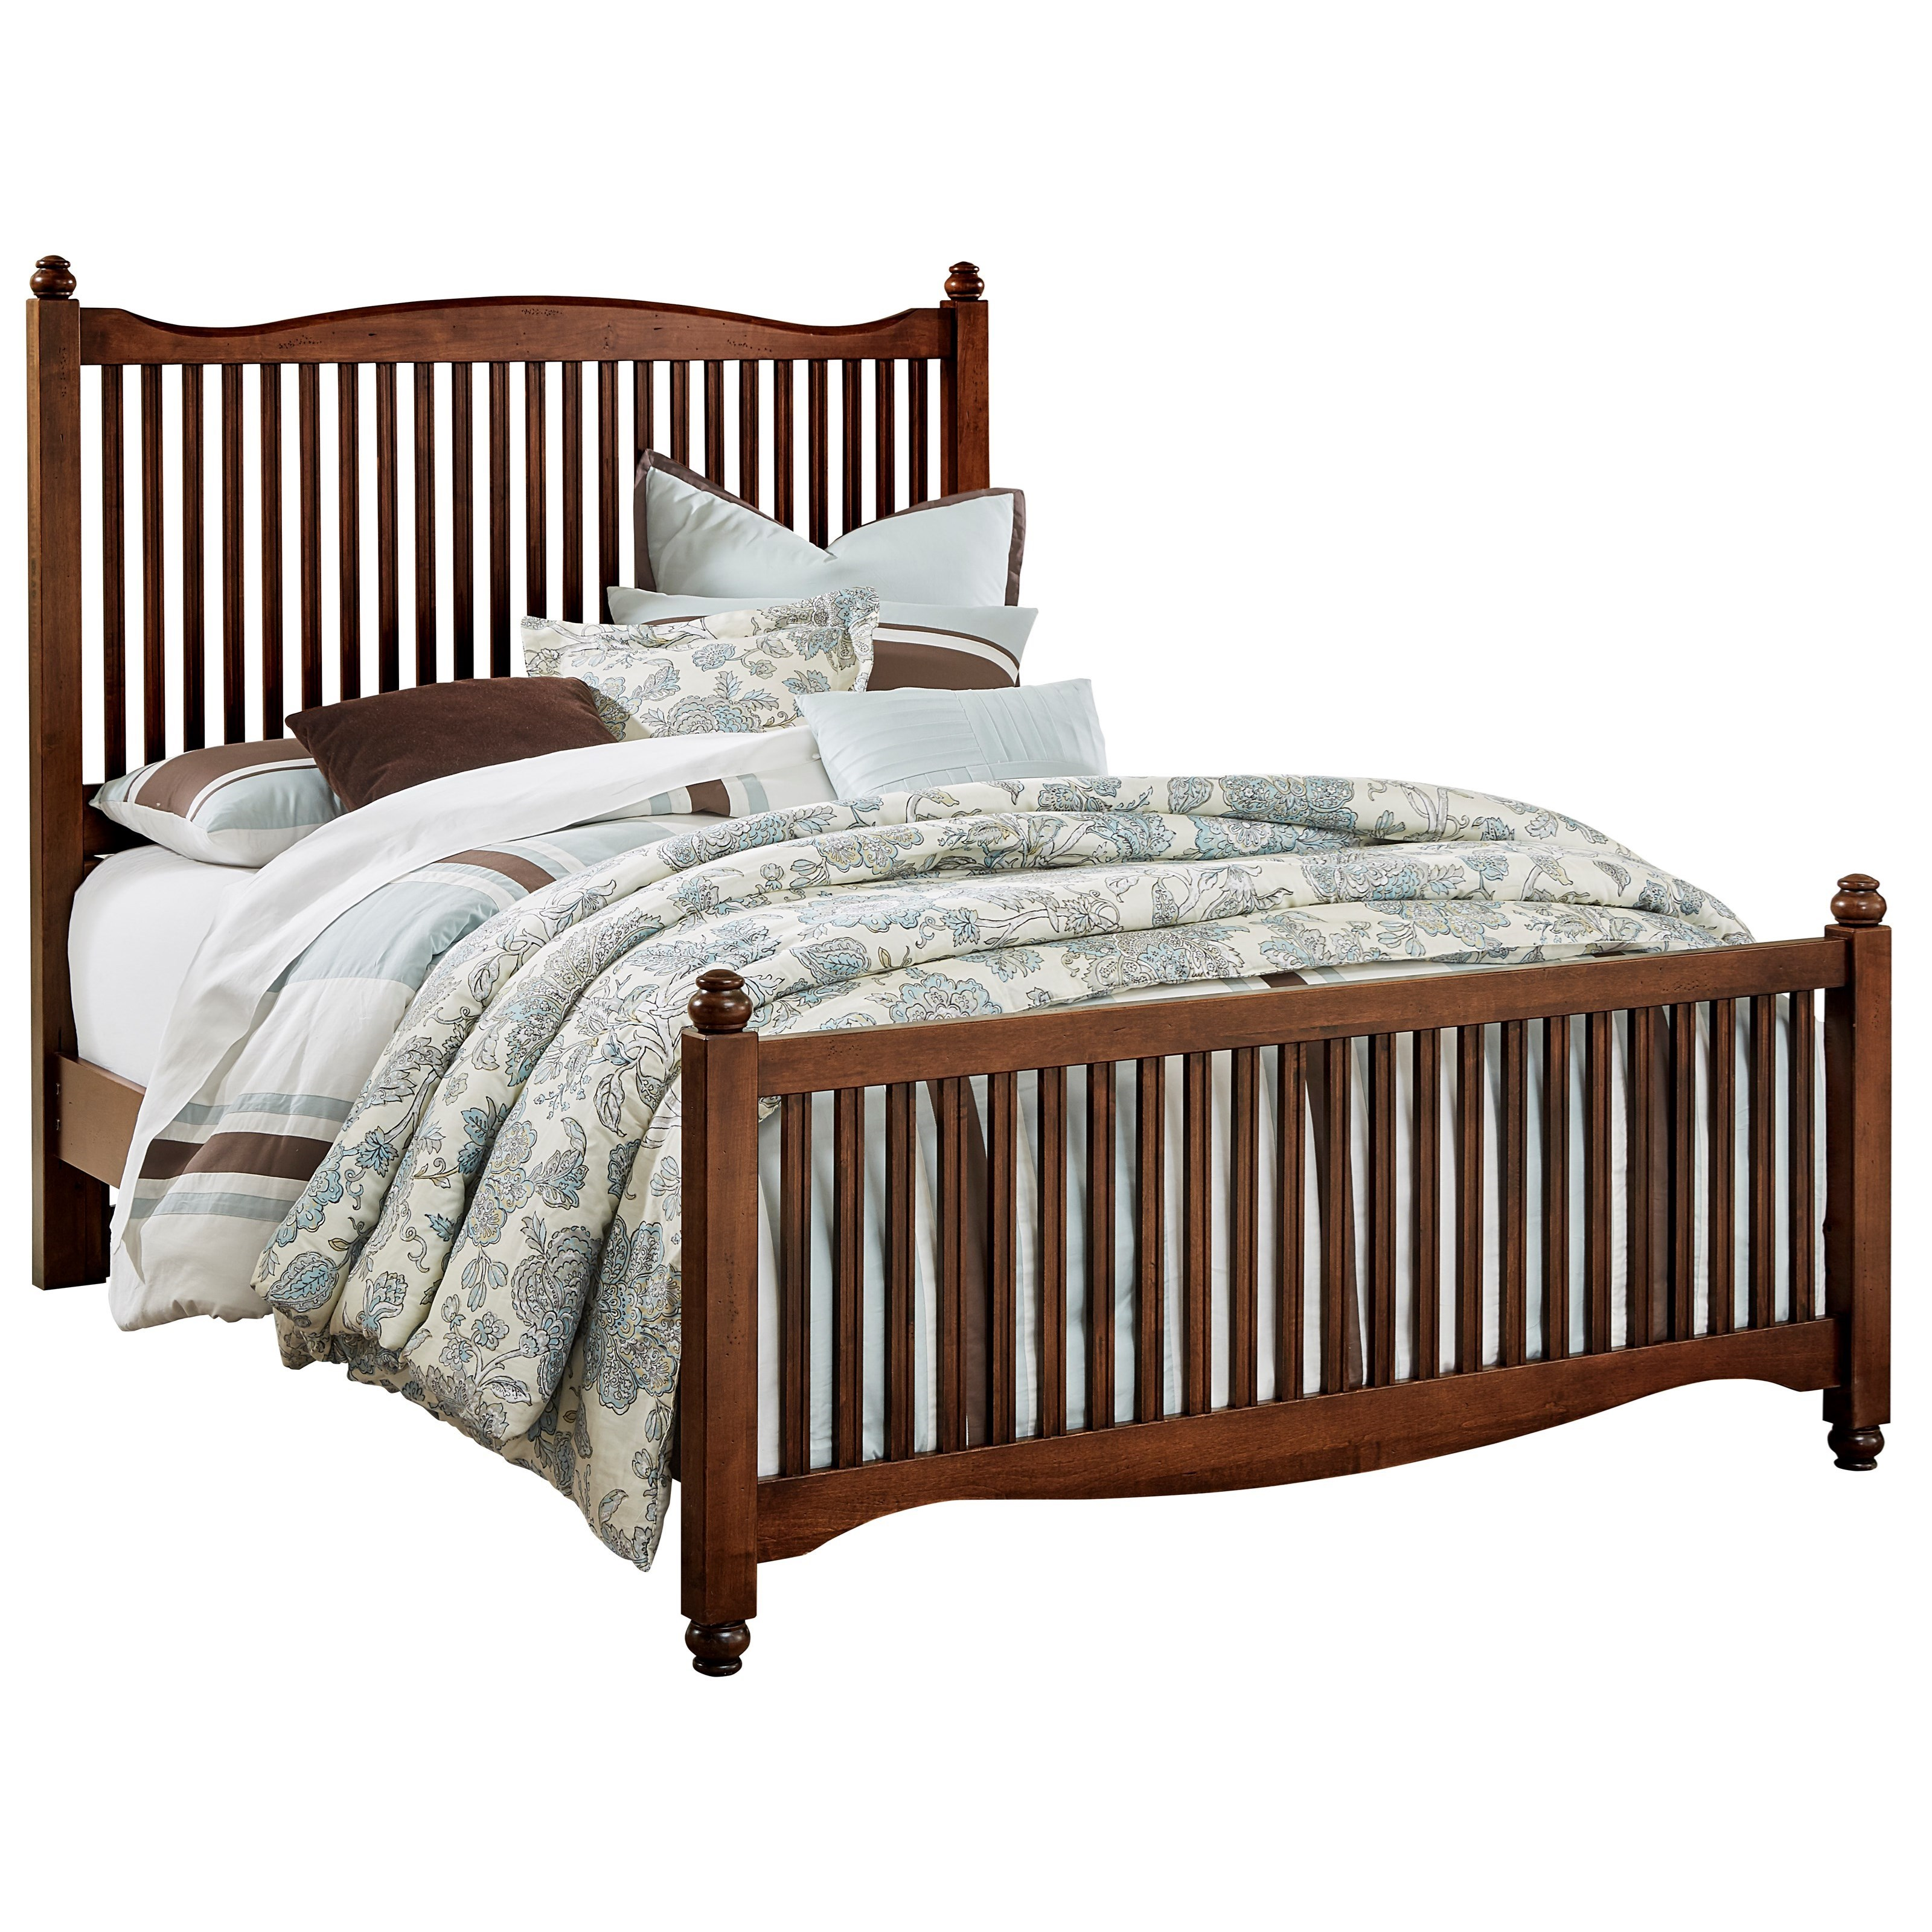 Vaughan Bassett American Maple Queen Slat Bed - Item Number: 400-557+755+922